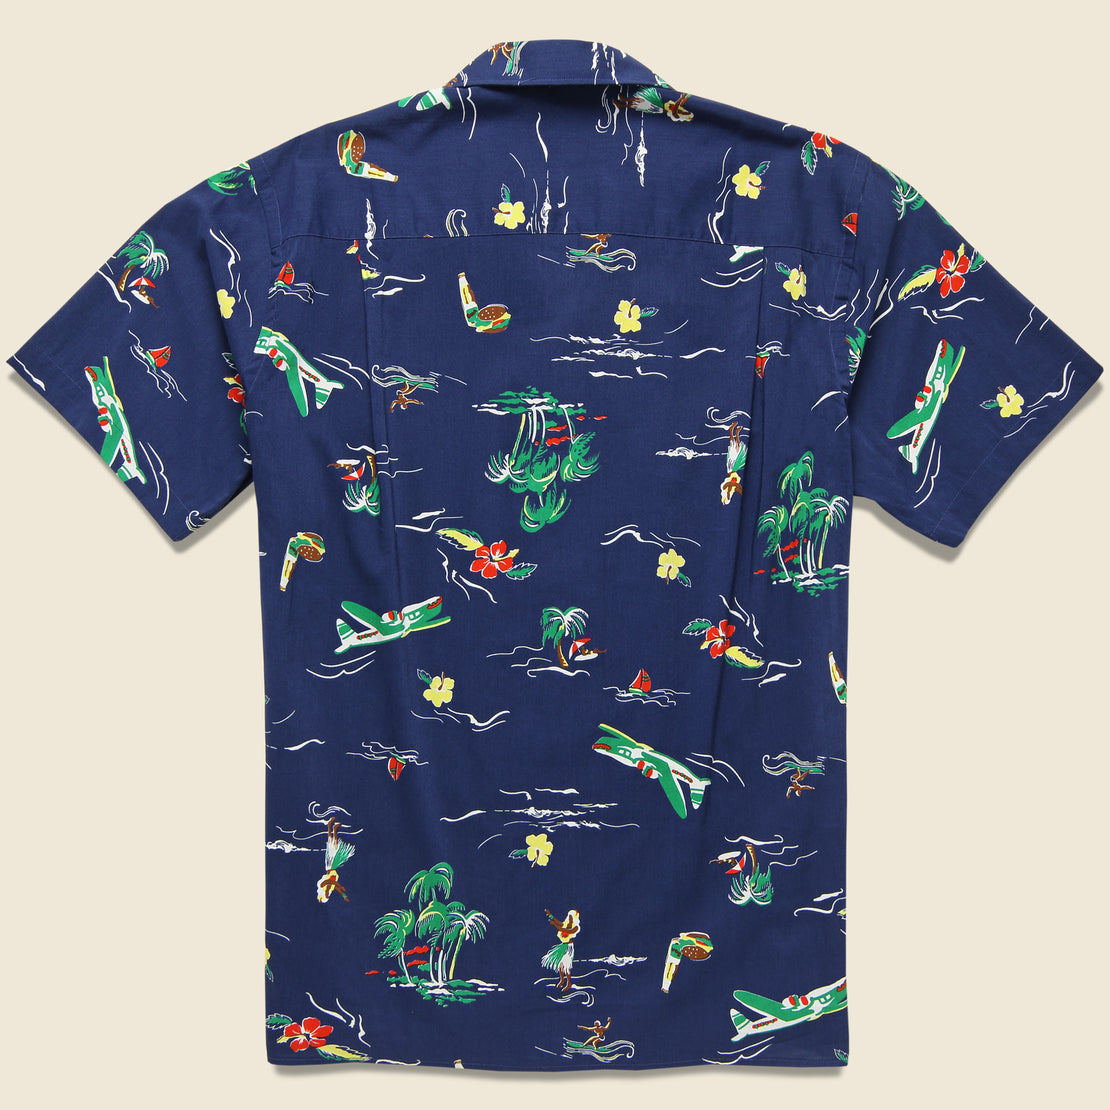 Surf & Turf Shirt - Navy